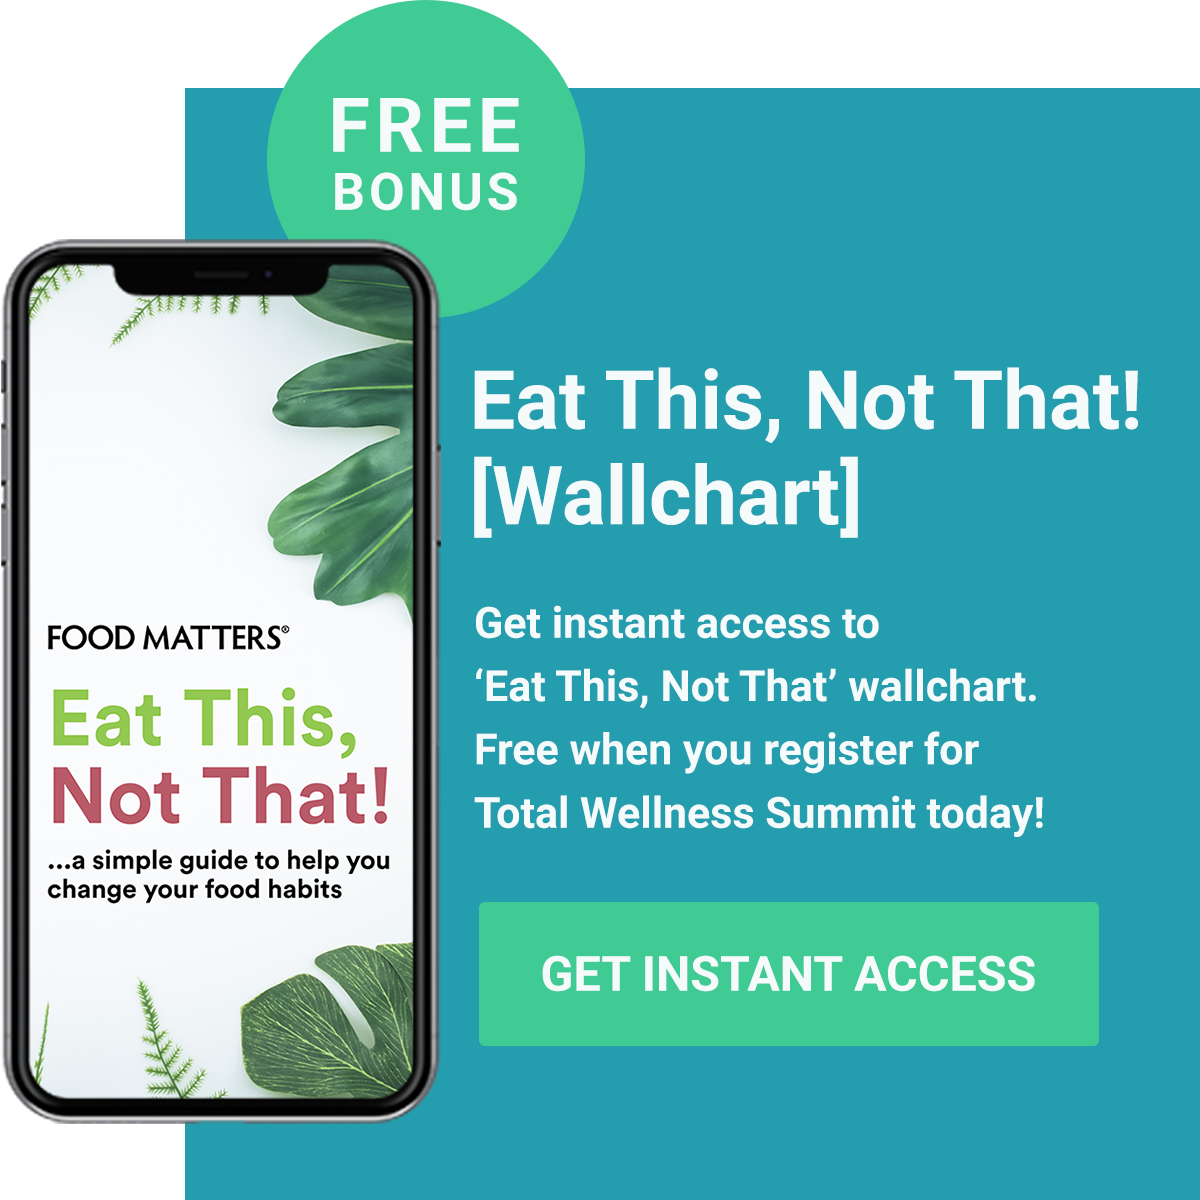 [FREE BONUS] Eat This, Not That! - Get Instant Access